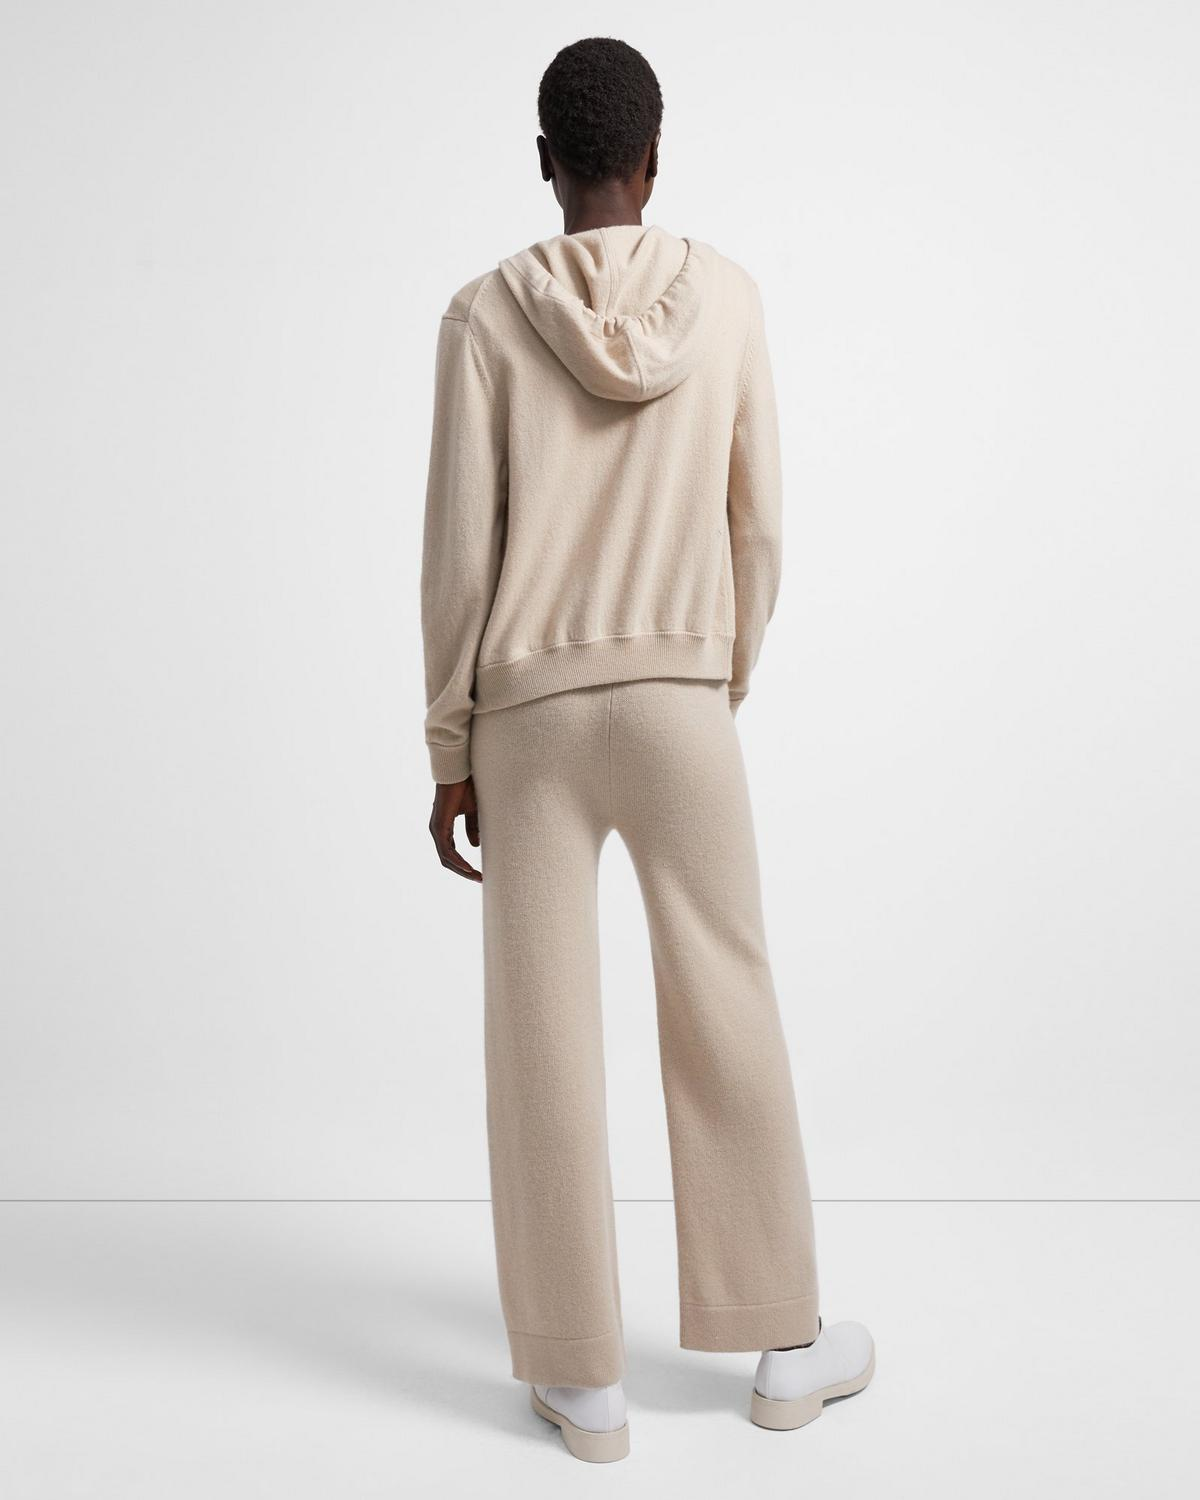 Relaxed Lounge Pant in Cashmere